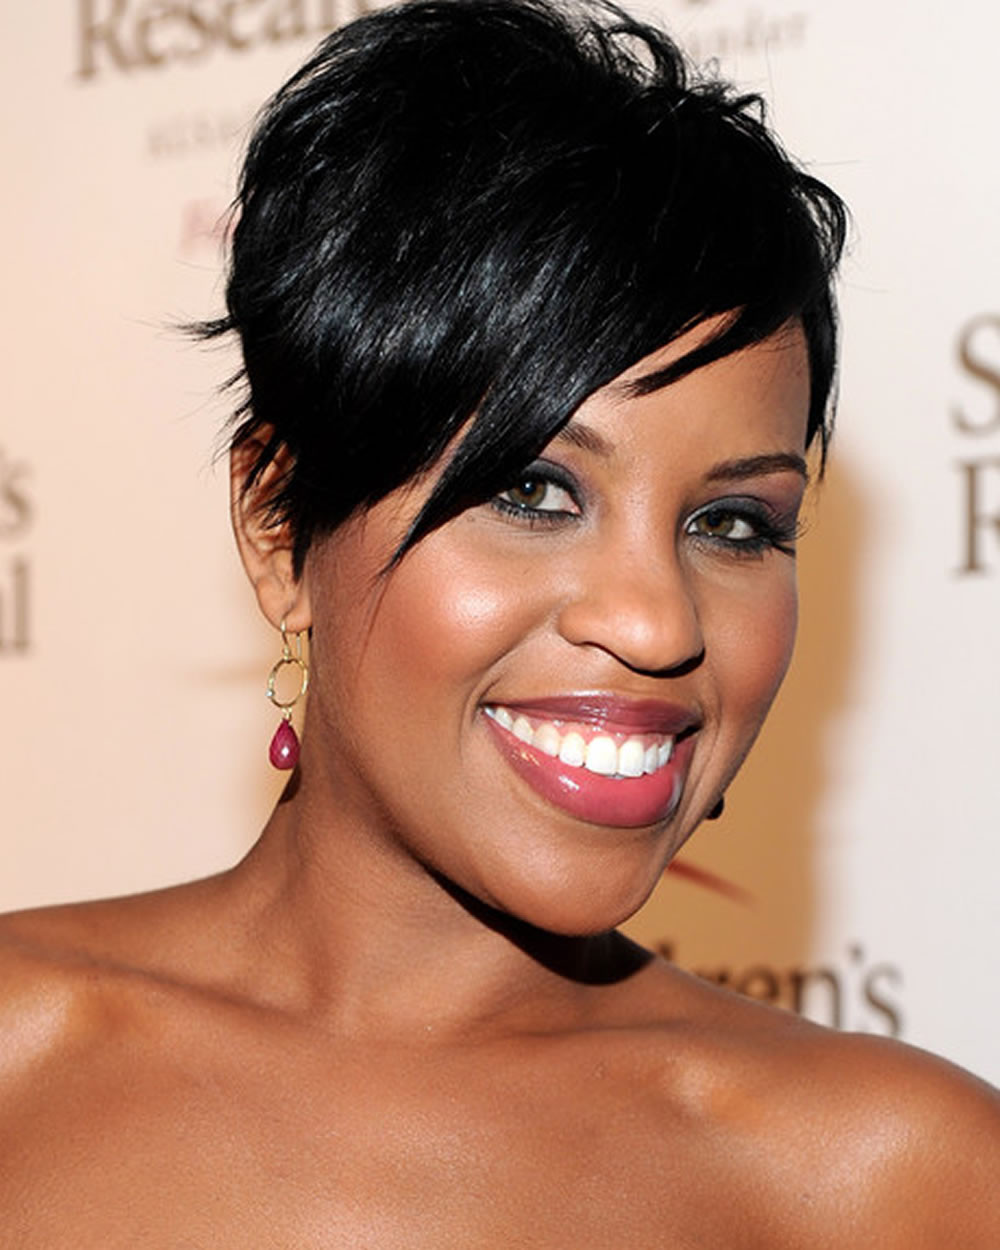 Short Black Hairstyles For 2019  Feminine Pixie Hairstyles For Black La s 2018 2019 Afro